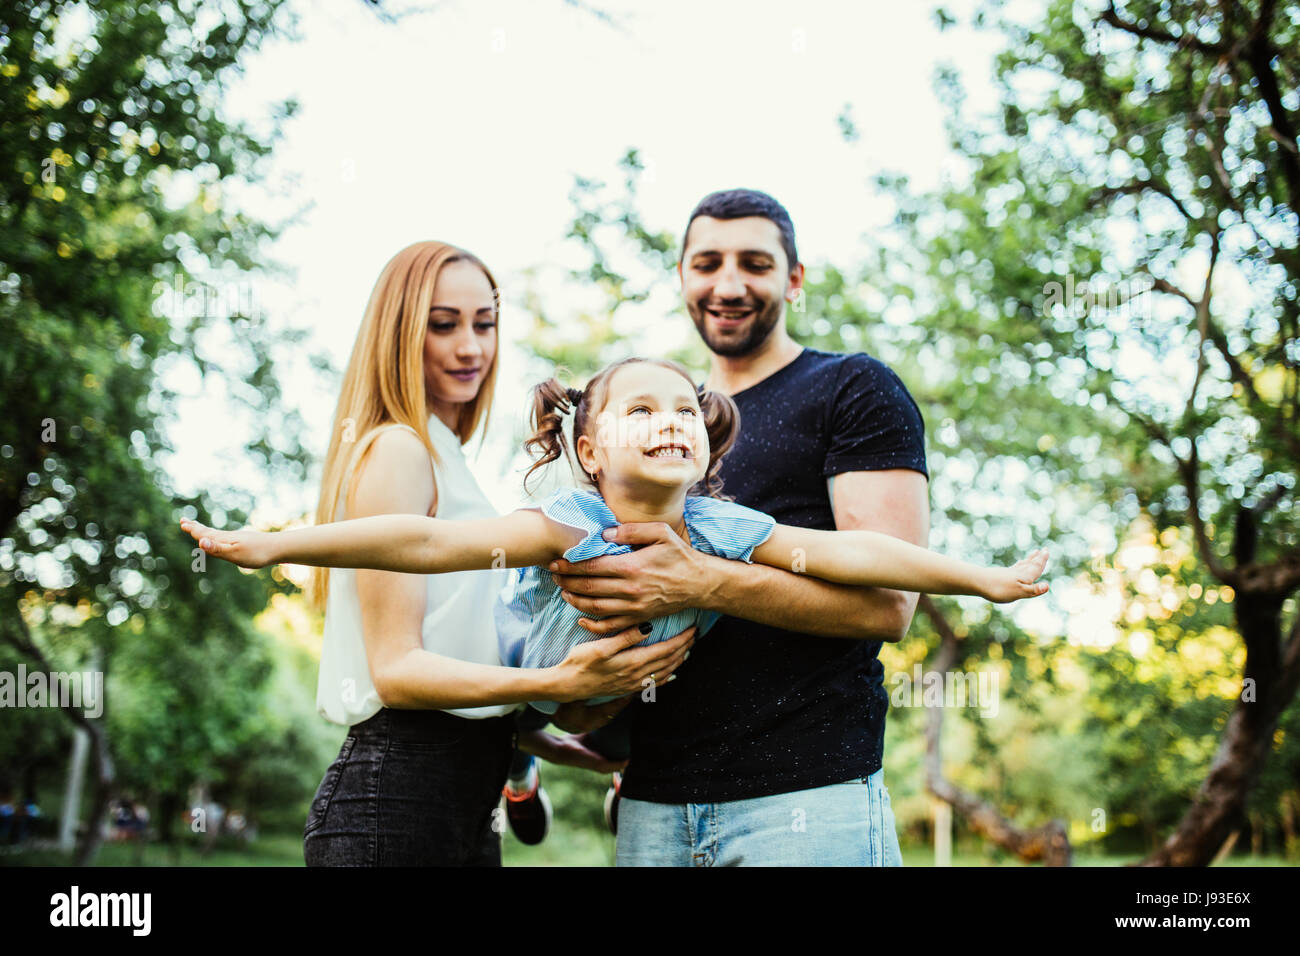 Happy joyful young family father, mother and little daughter having fun outdoors, playing together in summer park. - Stock Image